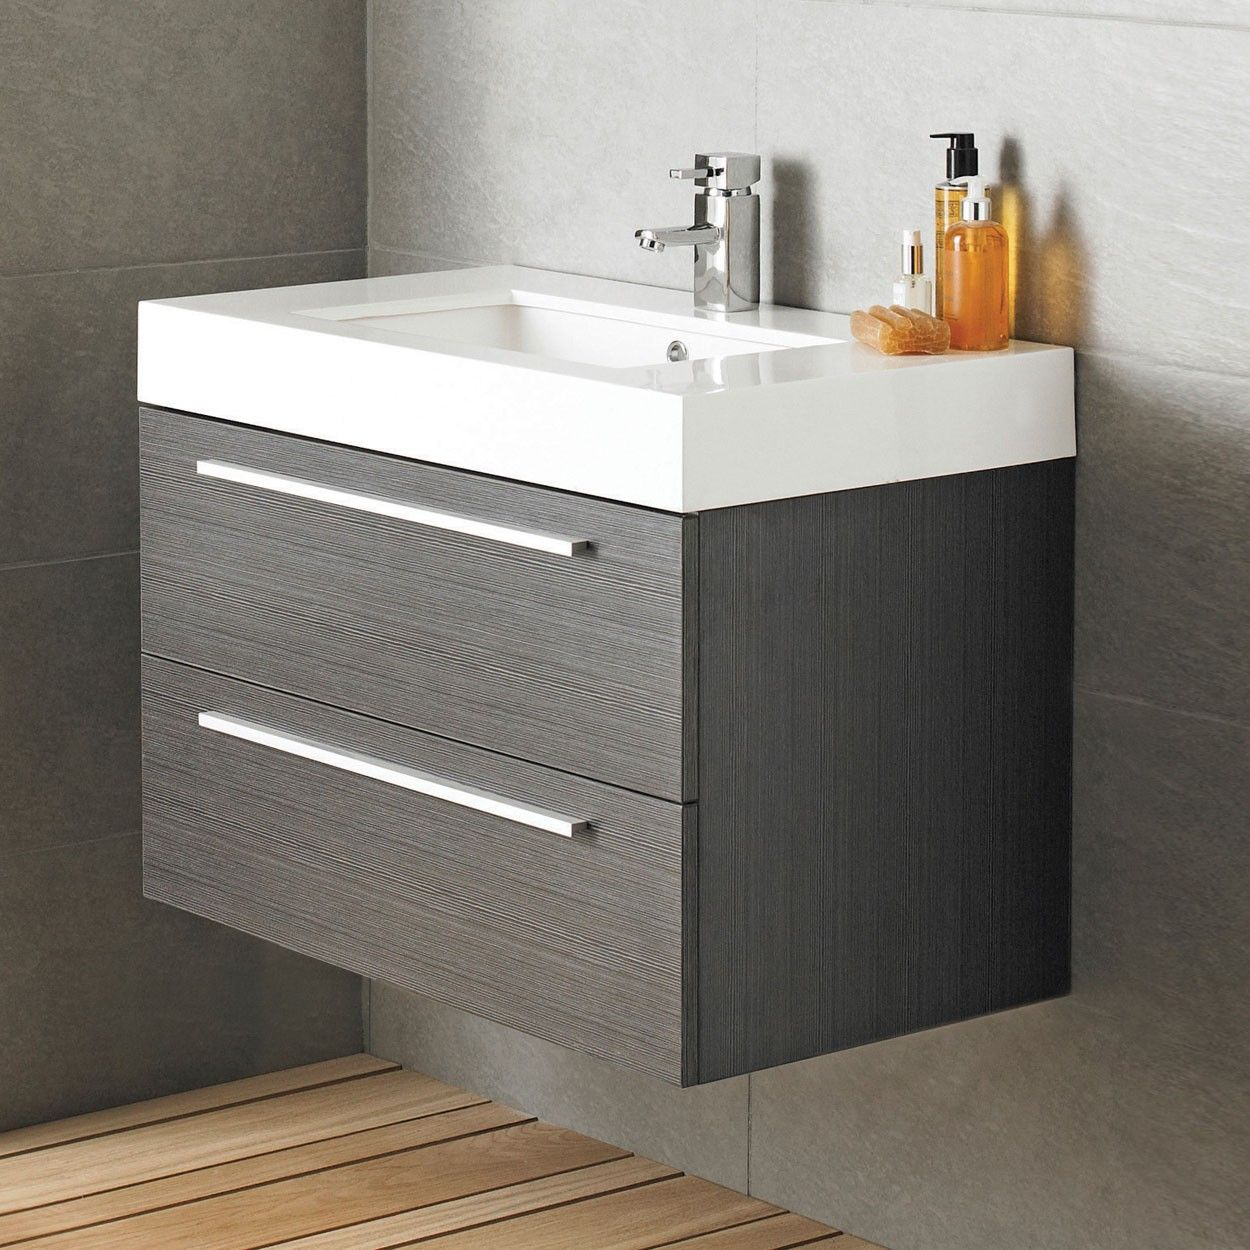 Vienna Wall Mounted Vanity Unit  800mm Wide  Textured Grey. Vienna Wall Mounted Vanity Unit  800mm Wide  Textured Grey   Sinks